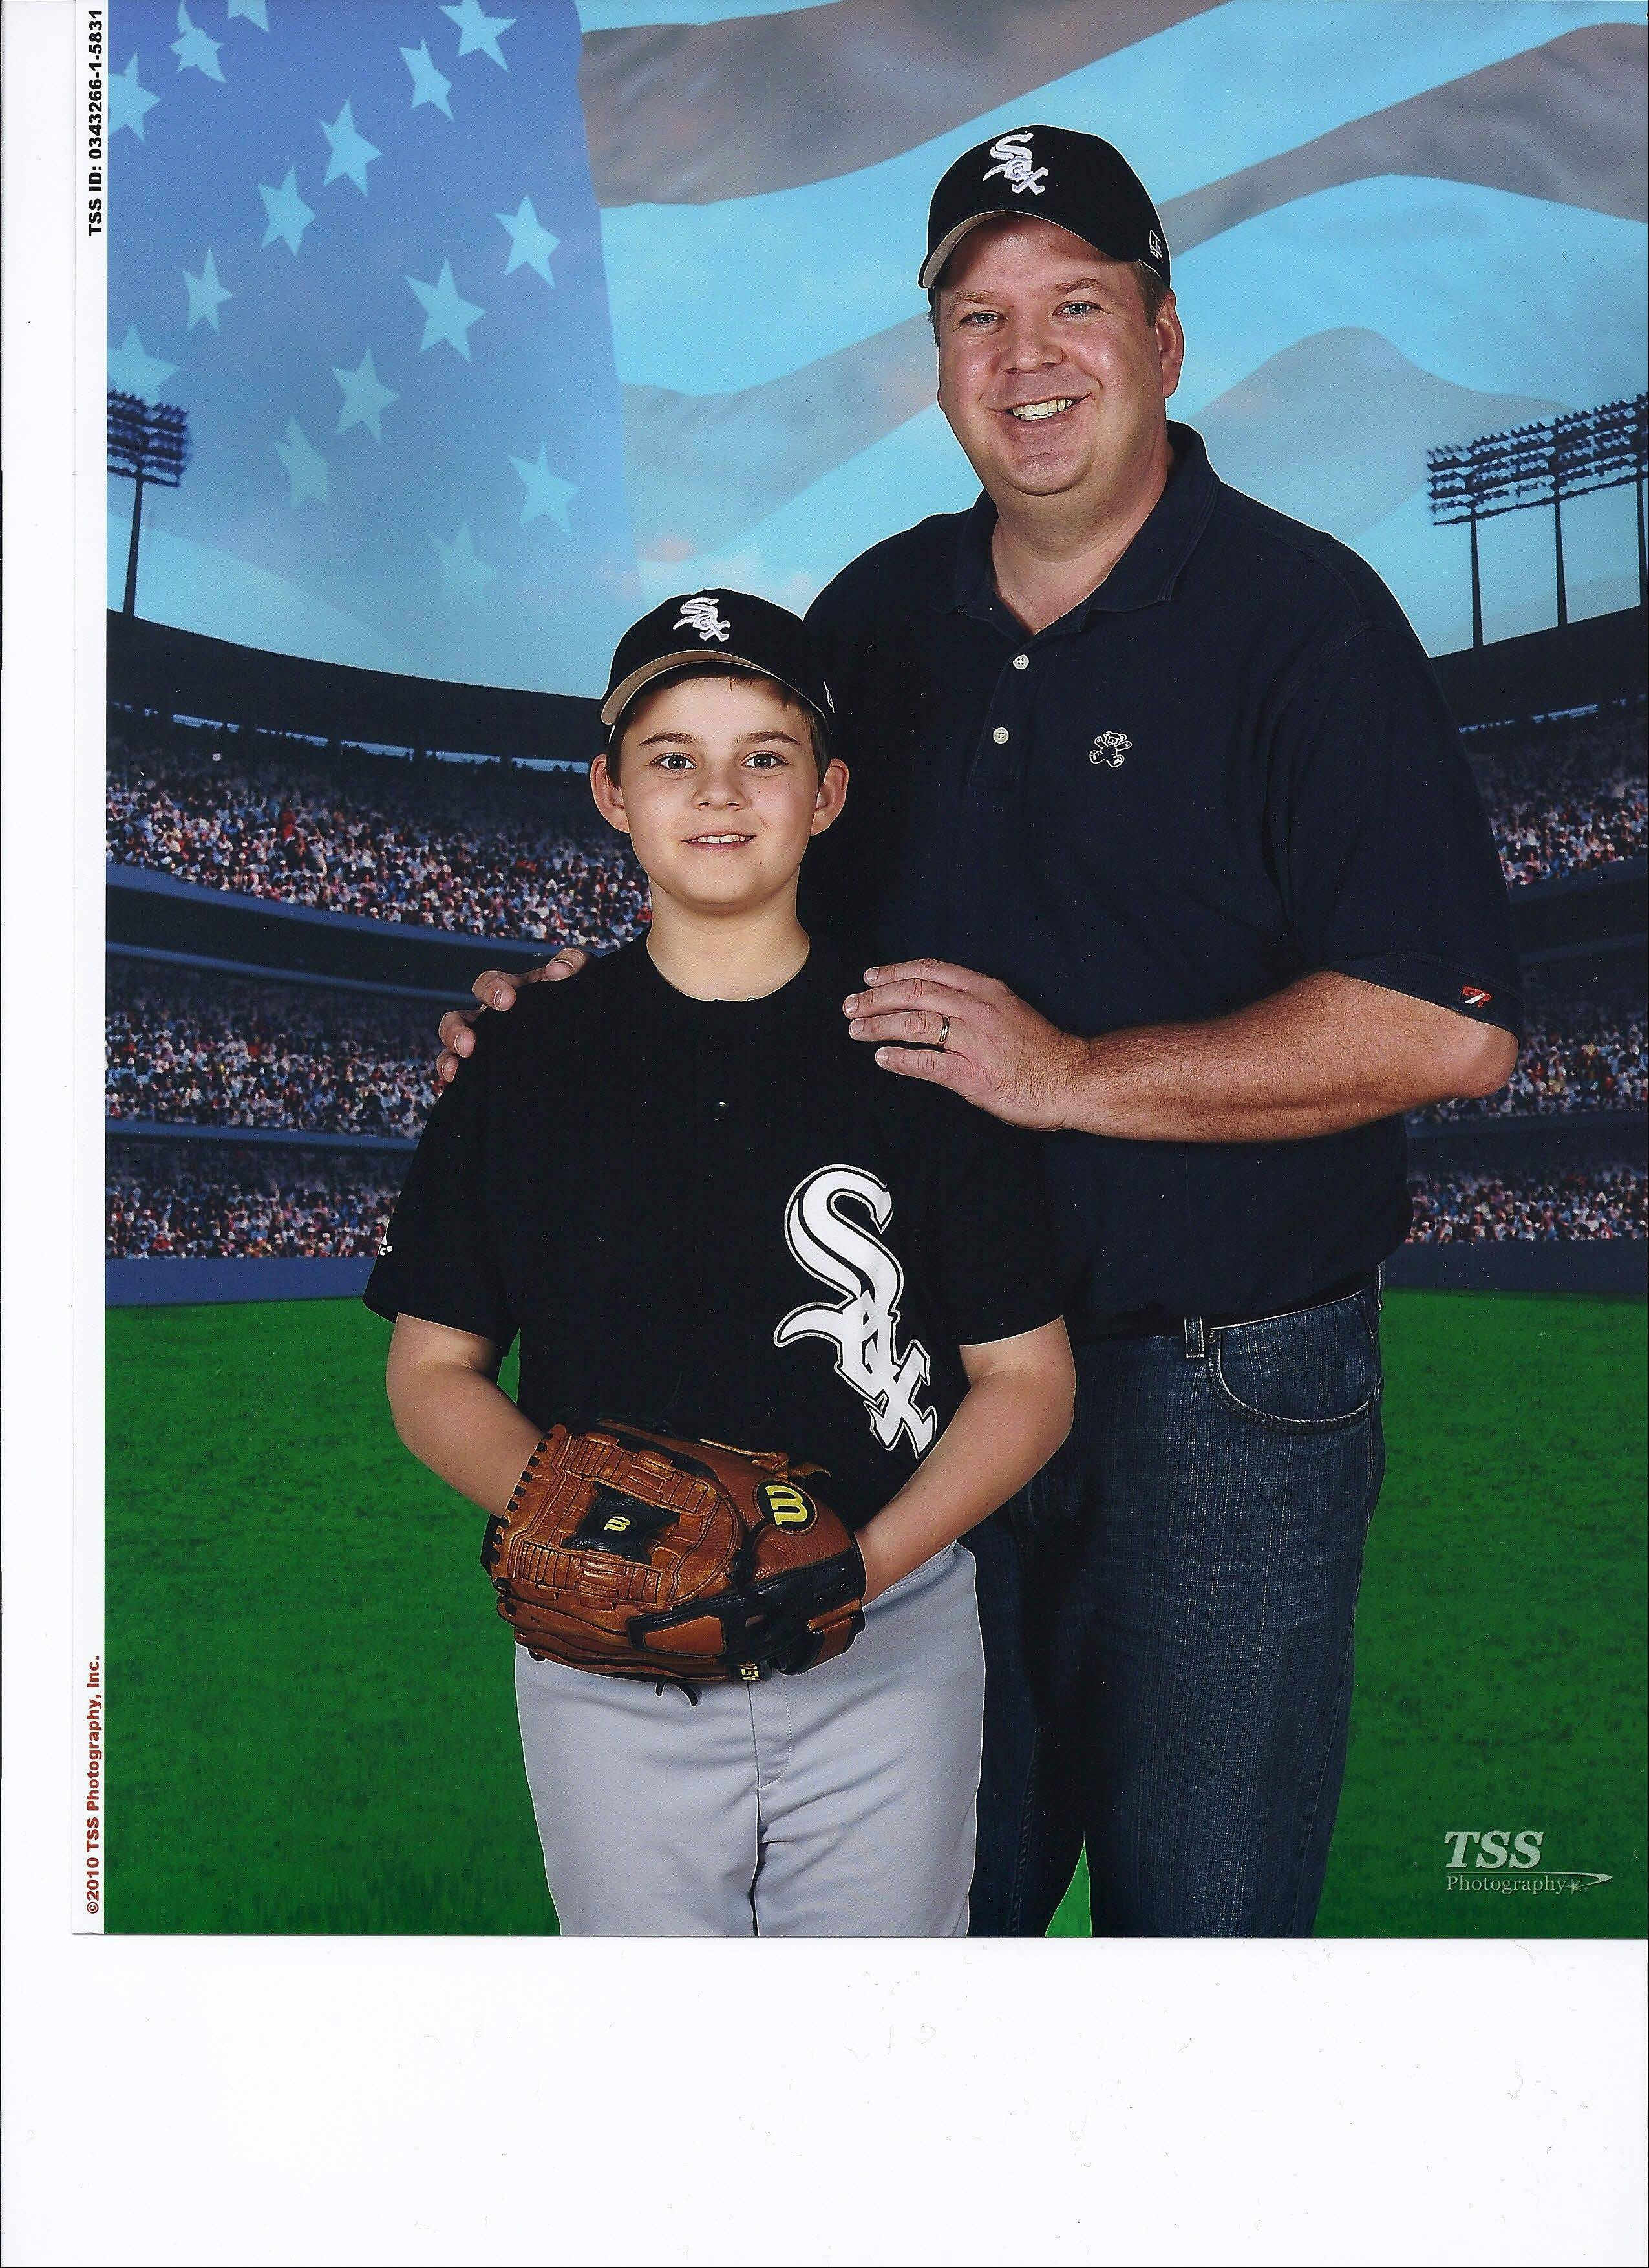 Even when he was undergoing proton therapy for his bone cancer, Ray Summins felt healthy enough to continue coaching his son Sam's baseball team in Elk Grove Village. The Hoffman Estates father has lost 86 pounds since this photo was taken, but doctors are confident he is on the path to a complete recovery.